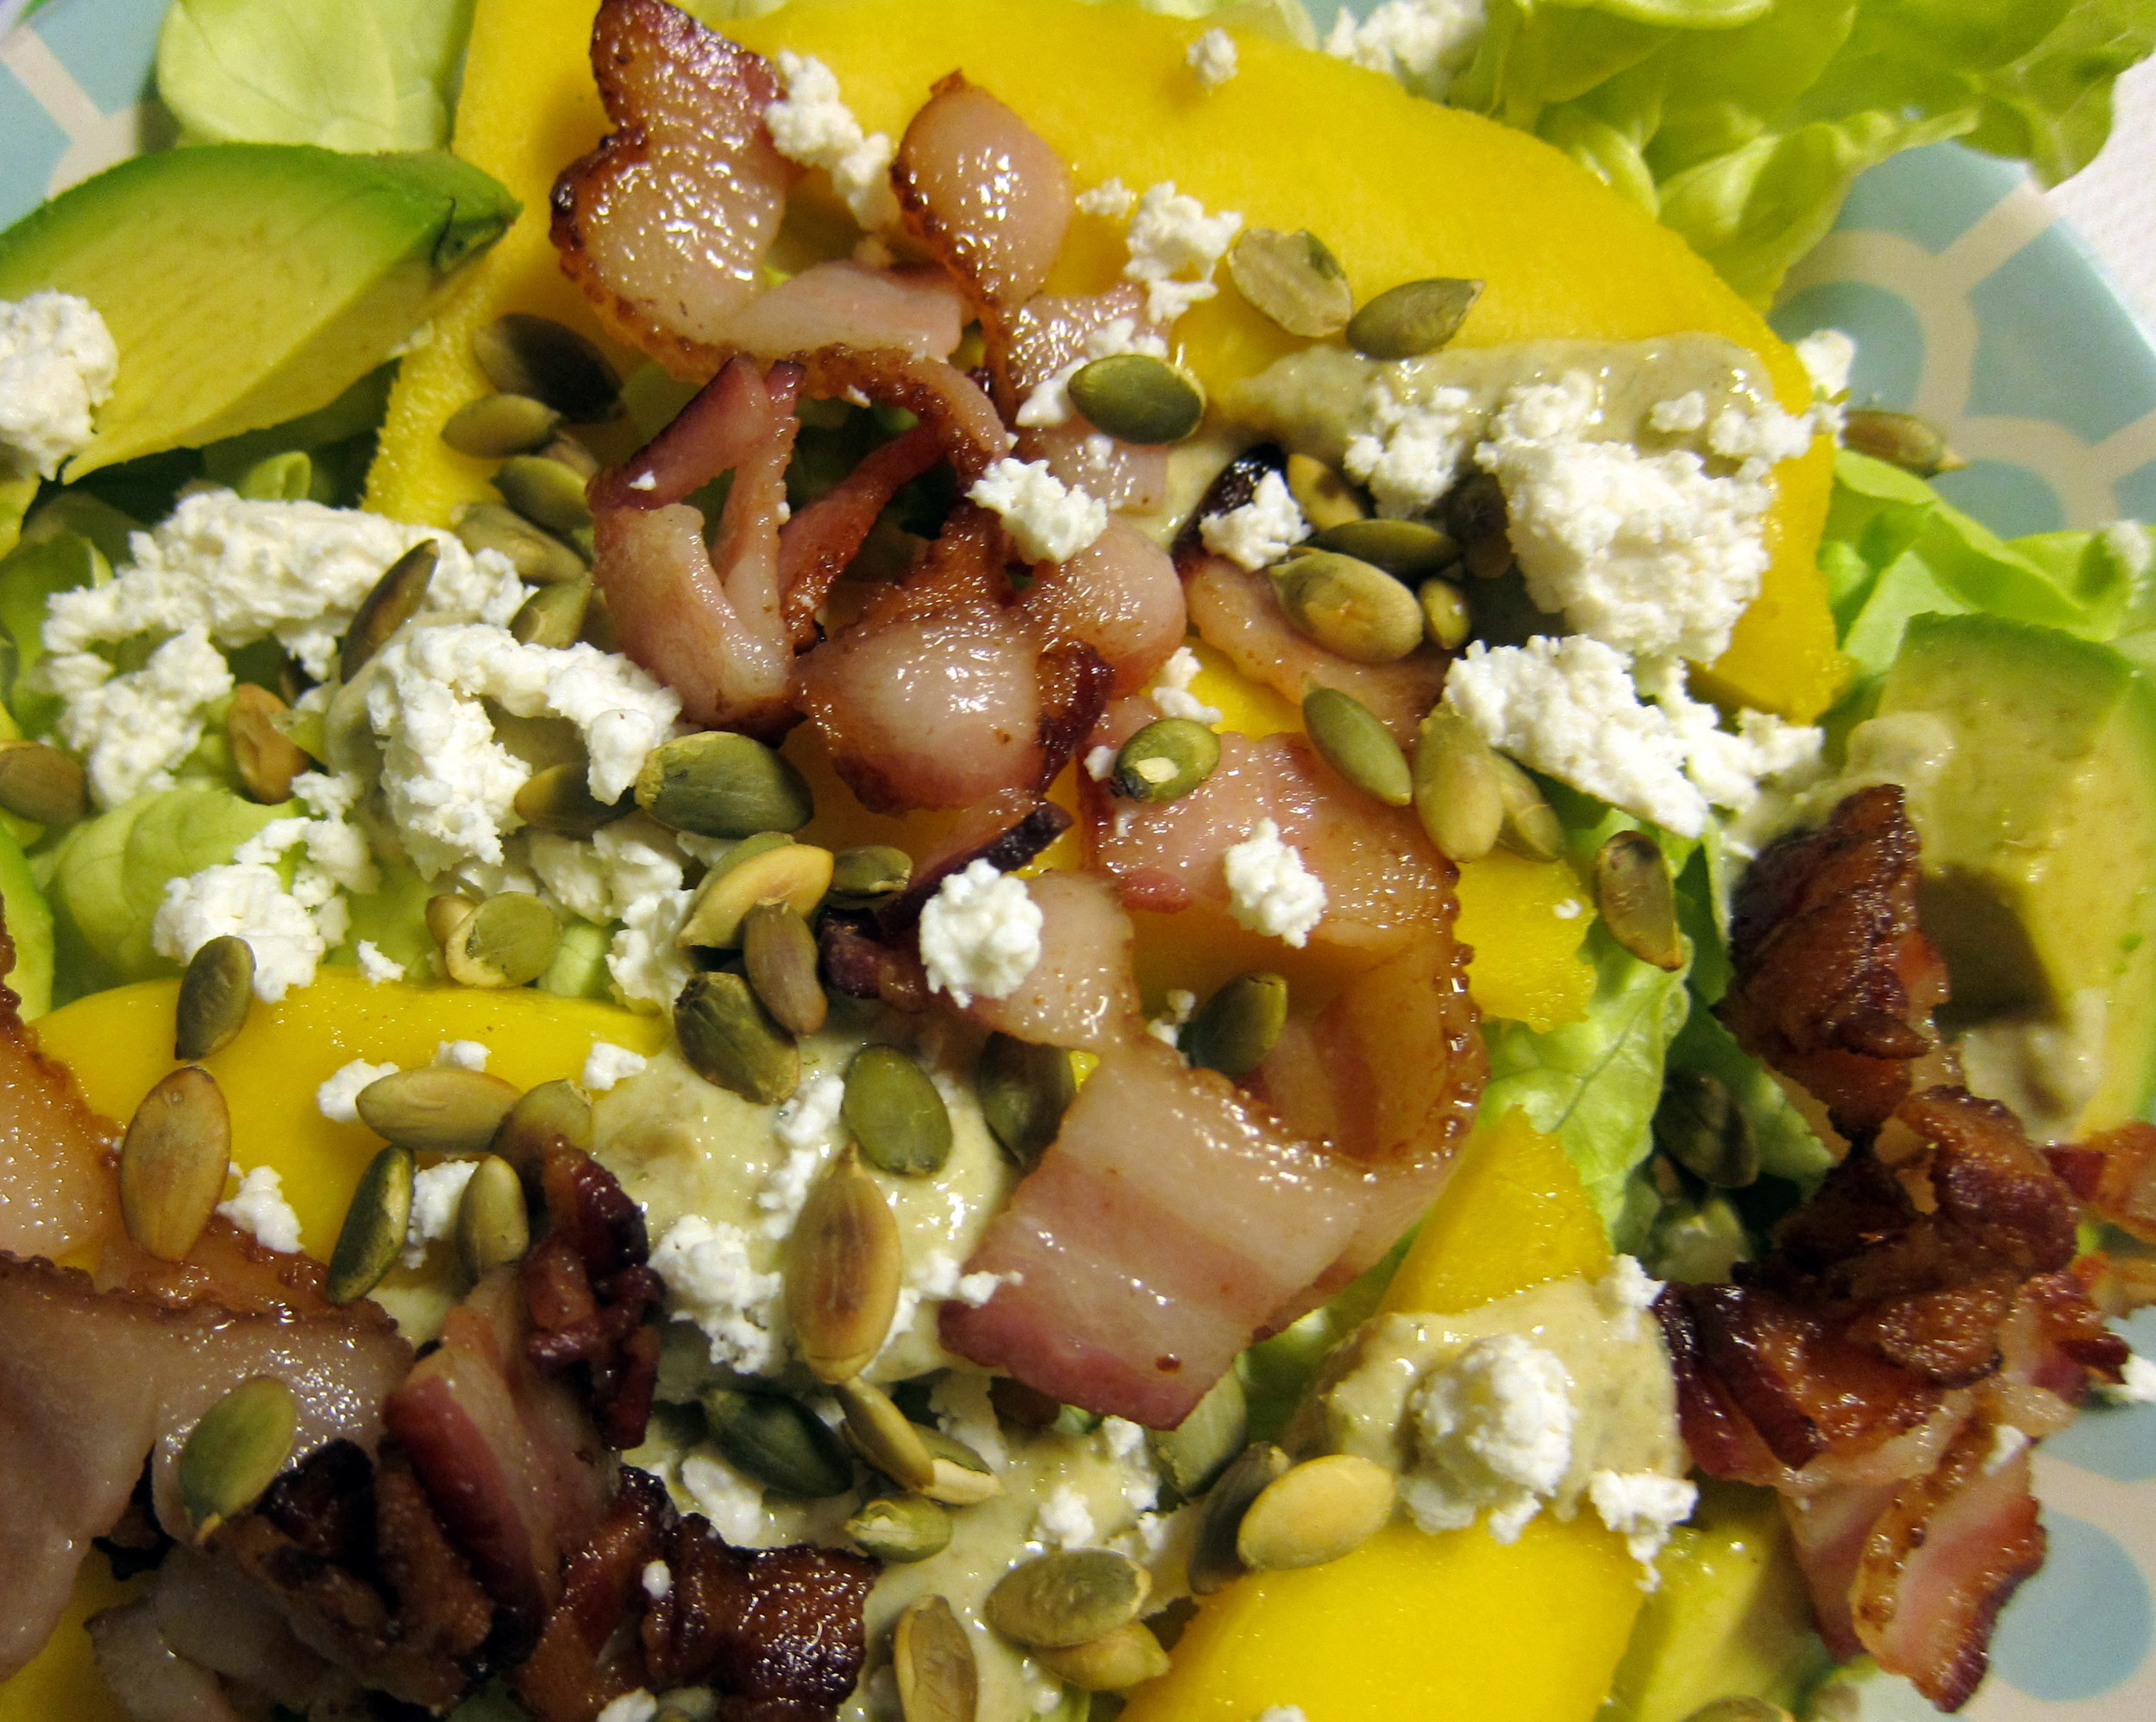 Ensalada de Aguacate y Mango con Queso Fresco, Tocino y Pepitas Tostadas: Avocado-Mango Salad with FResh Cheese, BAcon and Toasted Pumpkin SEeds